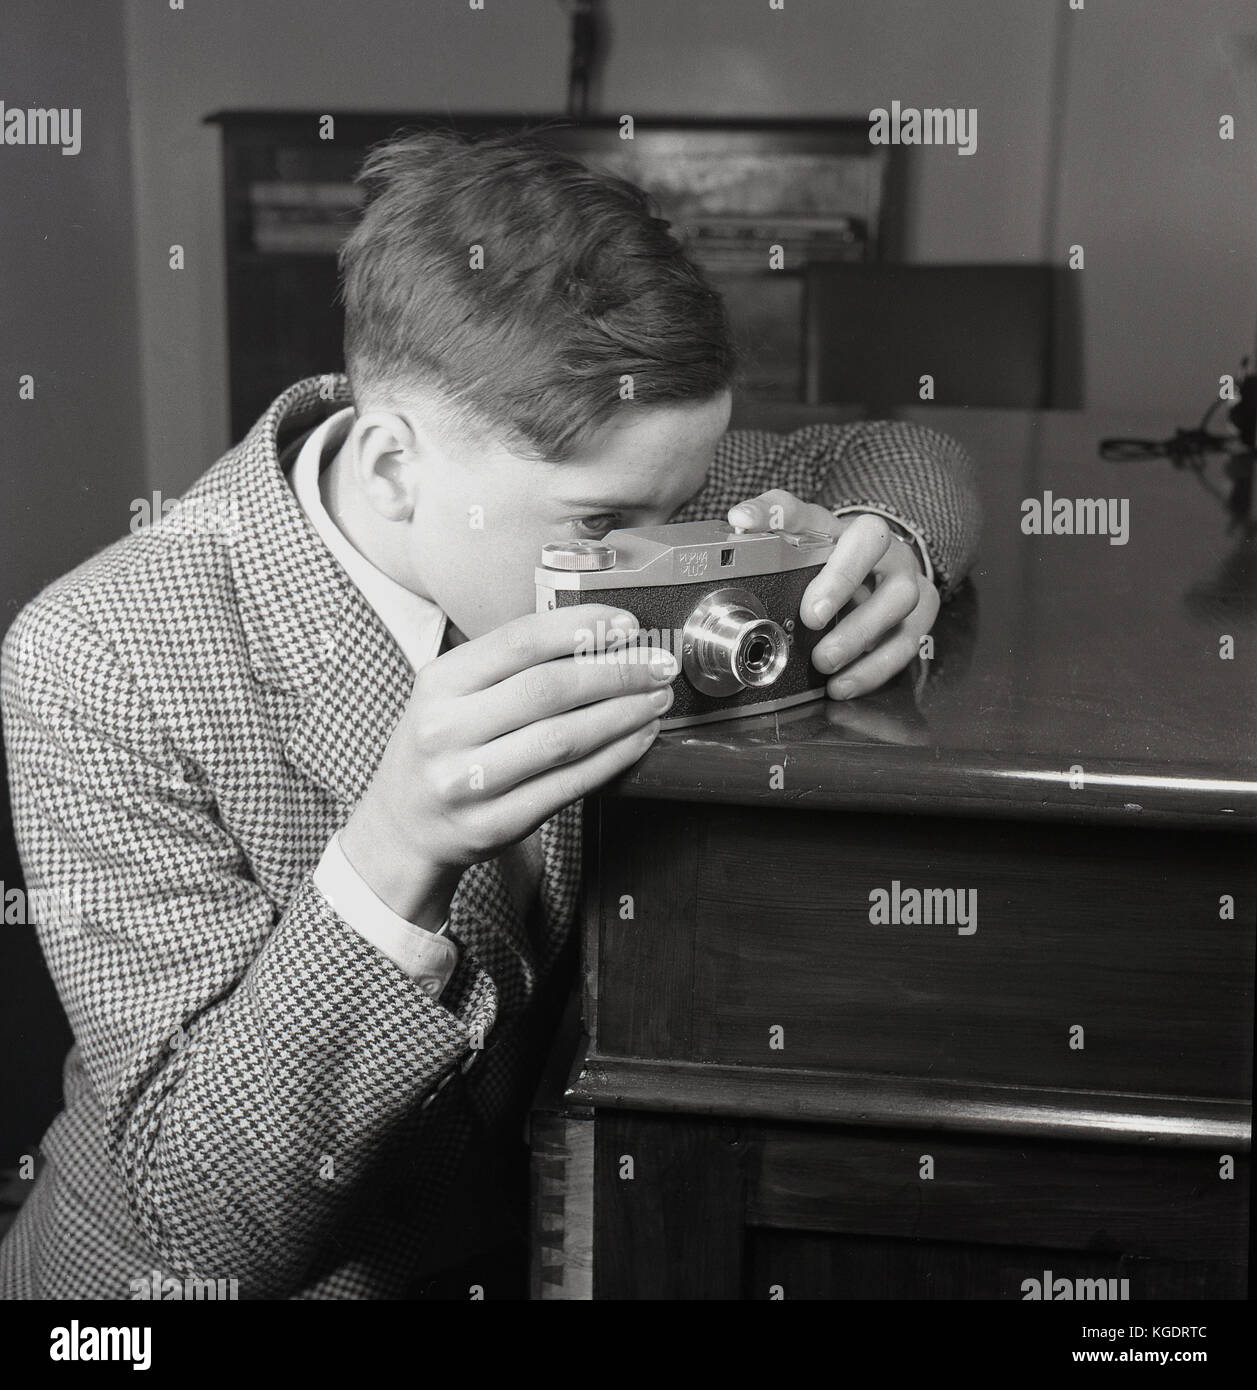 1950s, historical, young man using a corner of a cabinet for stability when taking a photograph with his Purma Plus - Stock Image